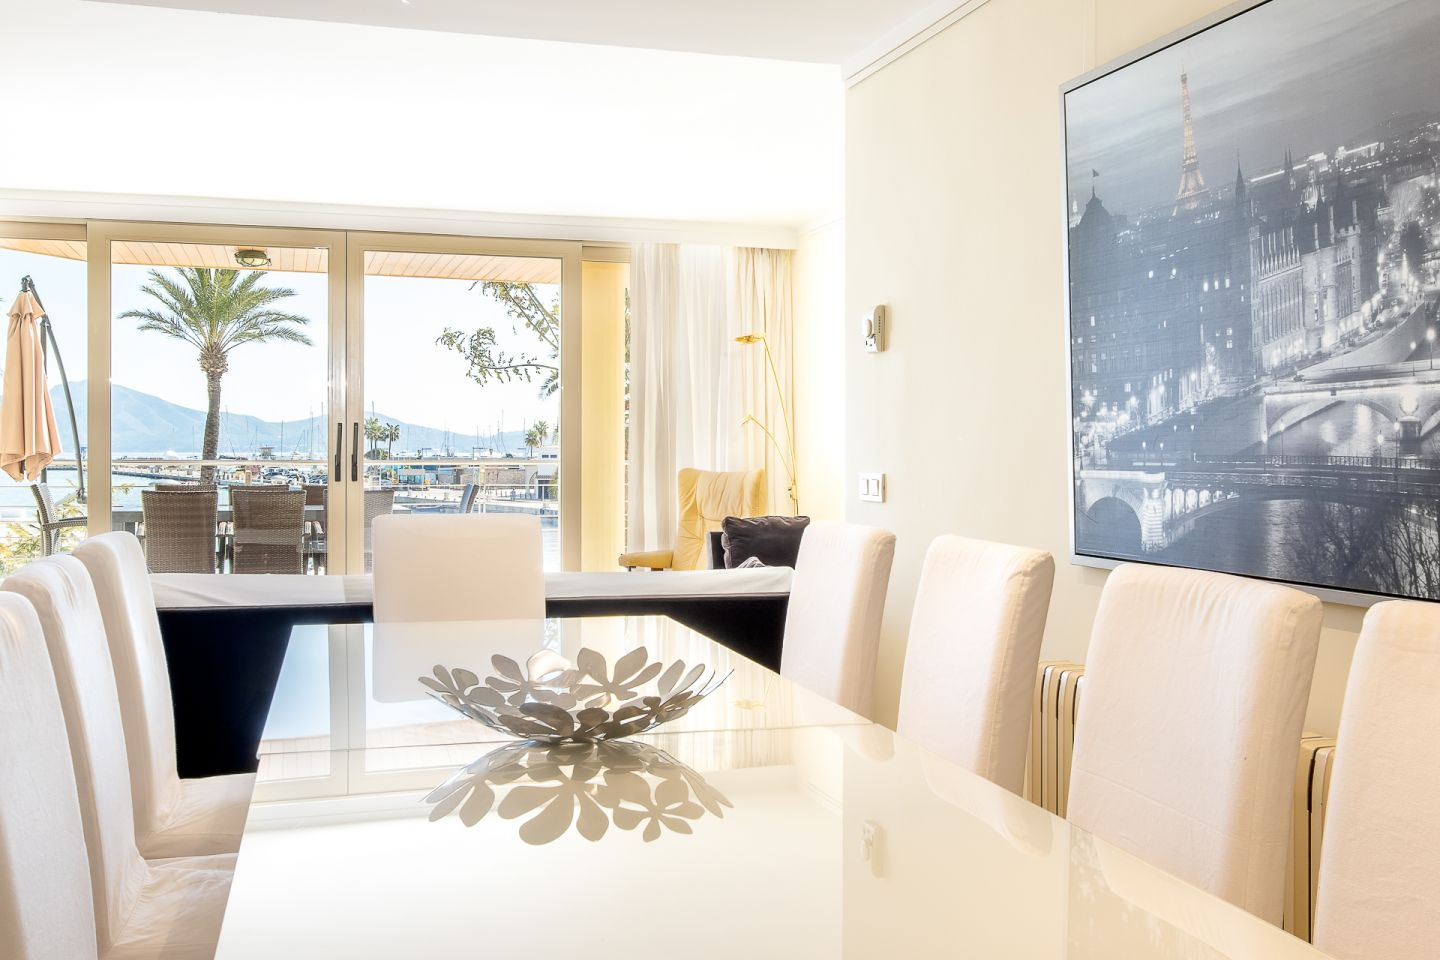 5 Bed Apartment for sale in Puerto Pollensa 4